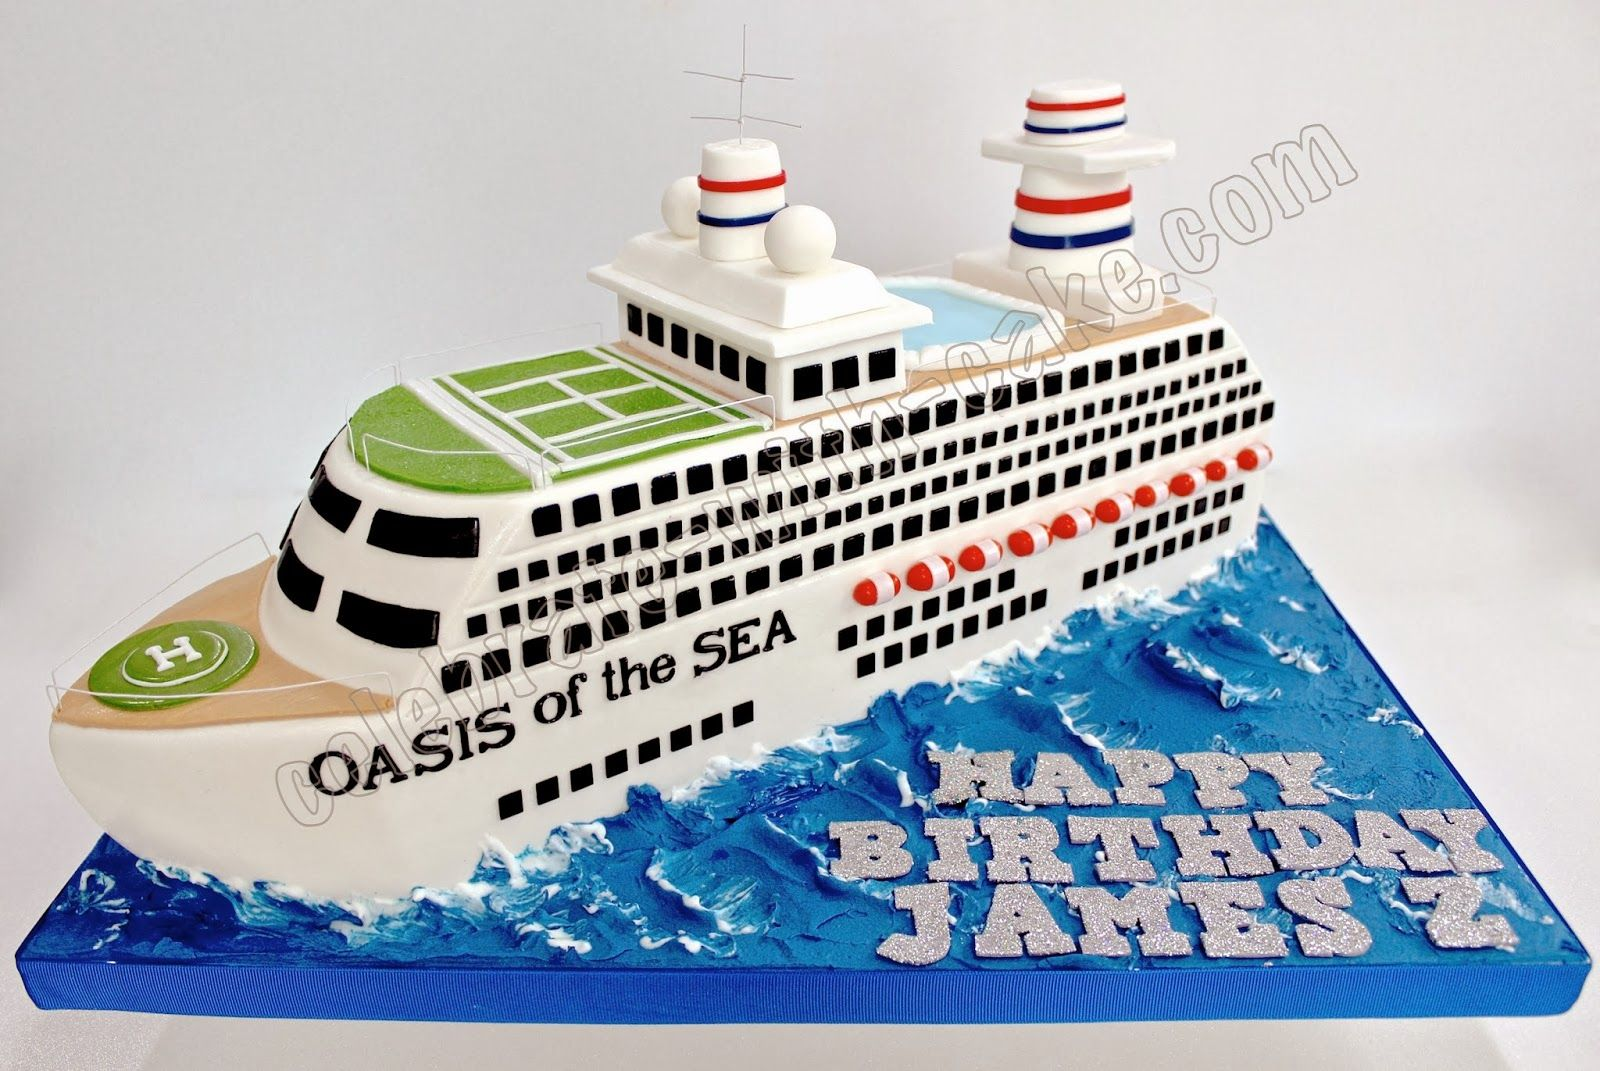 Surprising 3D Sculpted Cruise Ship Cake With Images Boat Cake Bon Voyage Funny Birthday Cards Online Inifofree Goldxyz